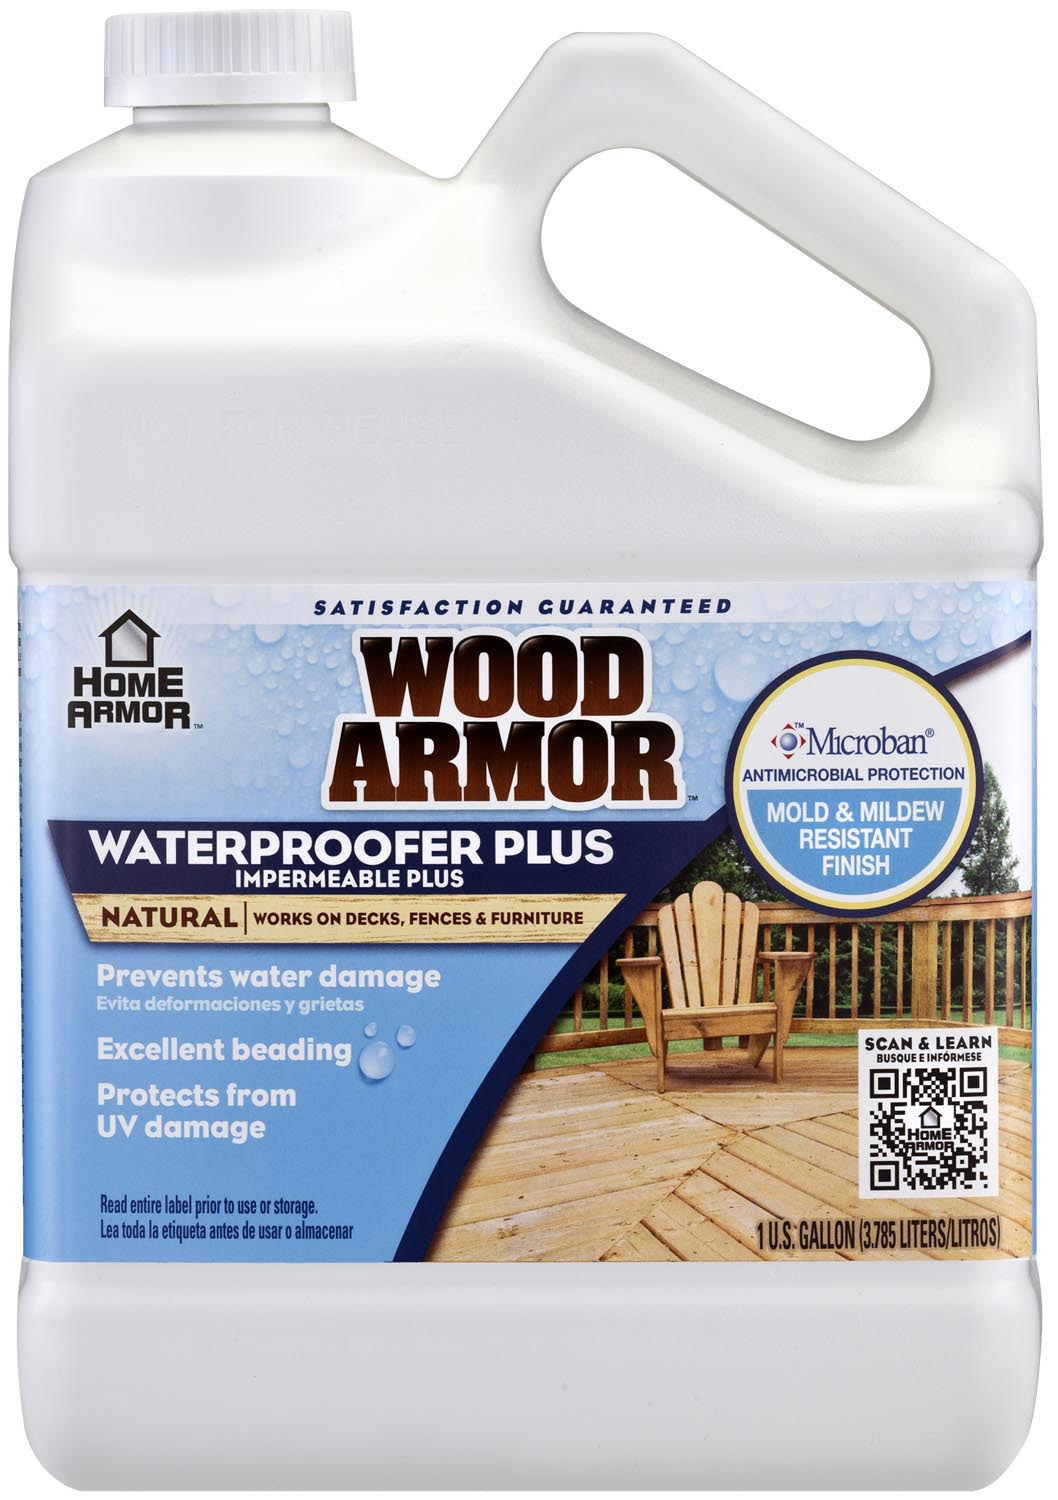 Home Armor Wood Armor 174 Waterproofer Plus Discontinued